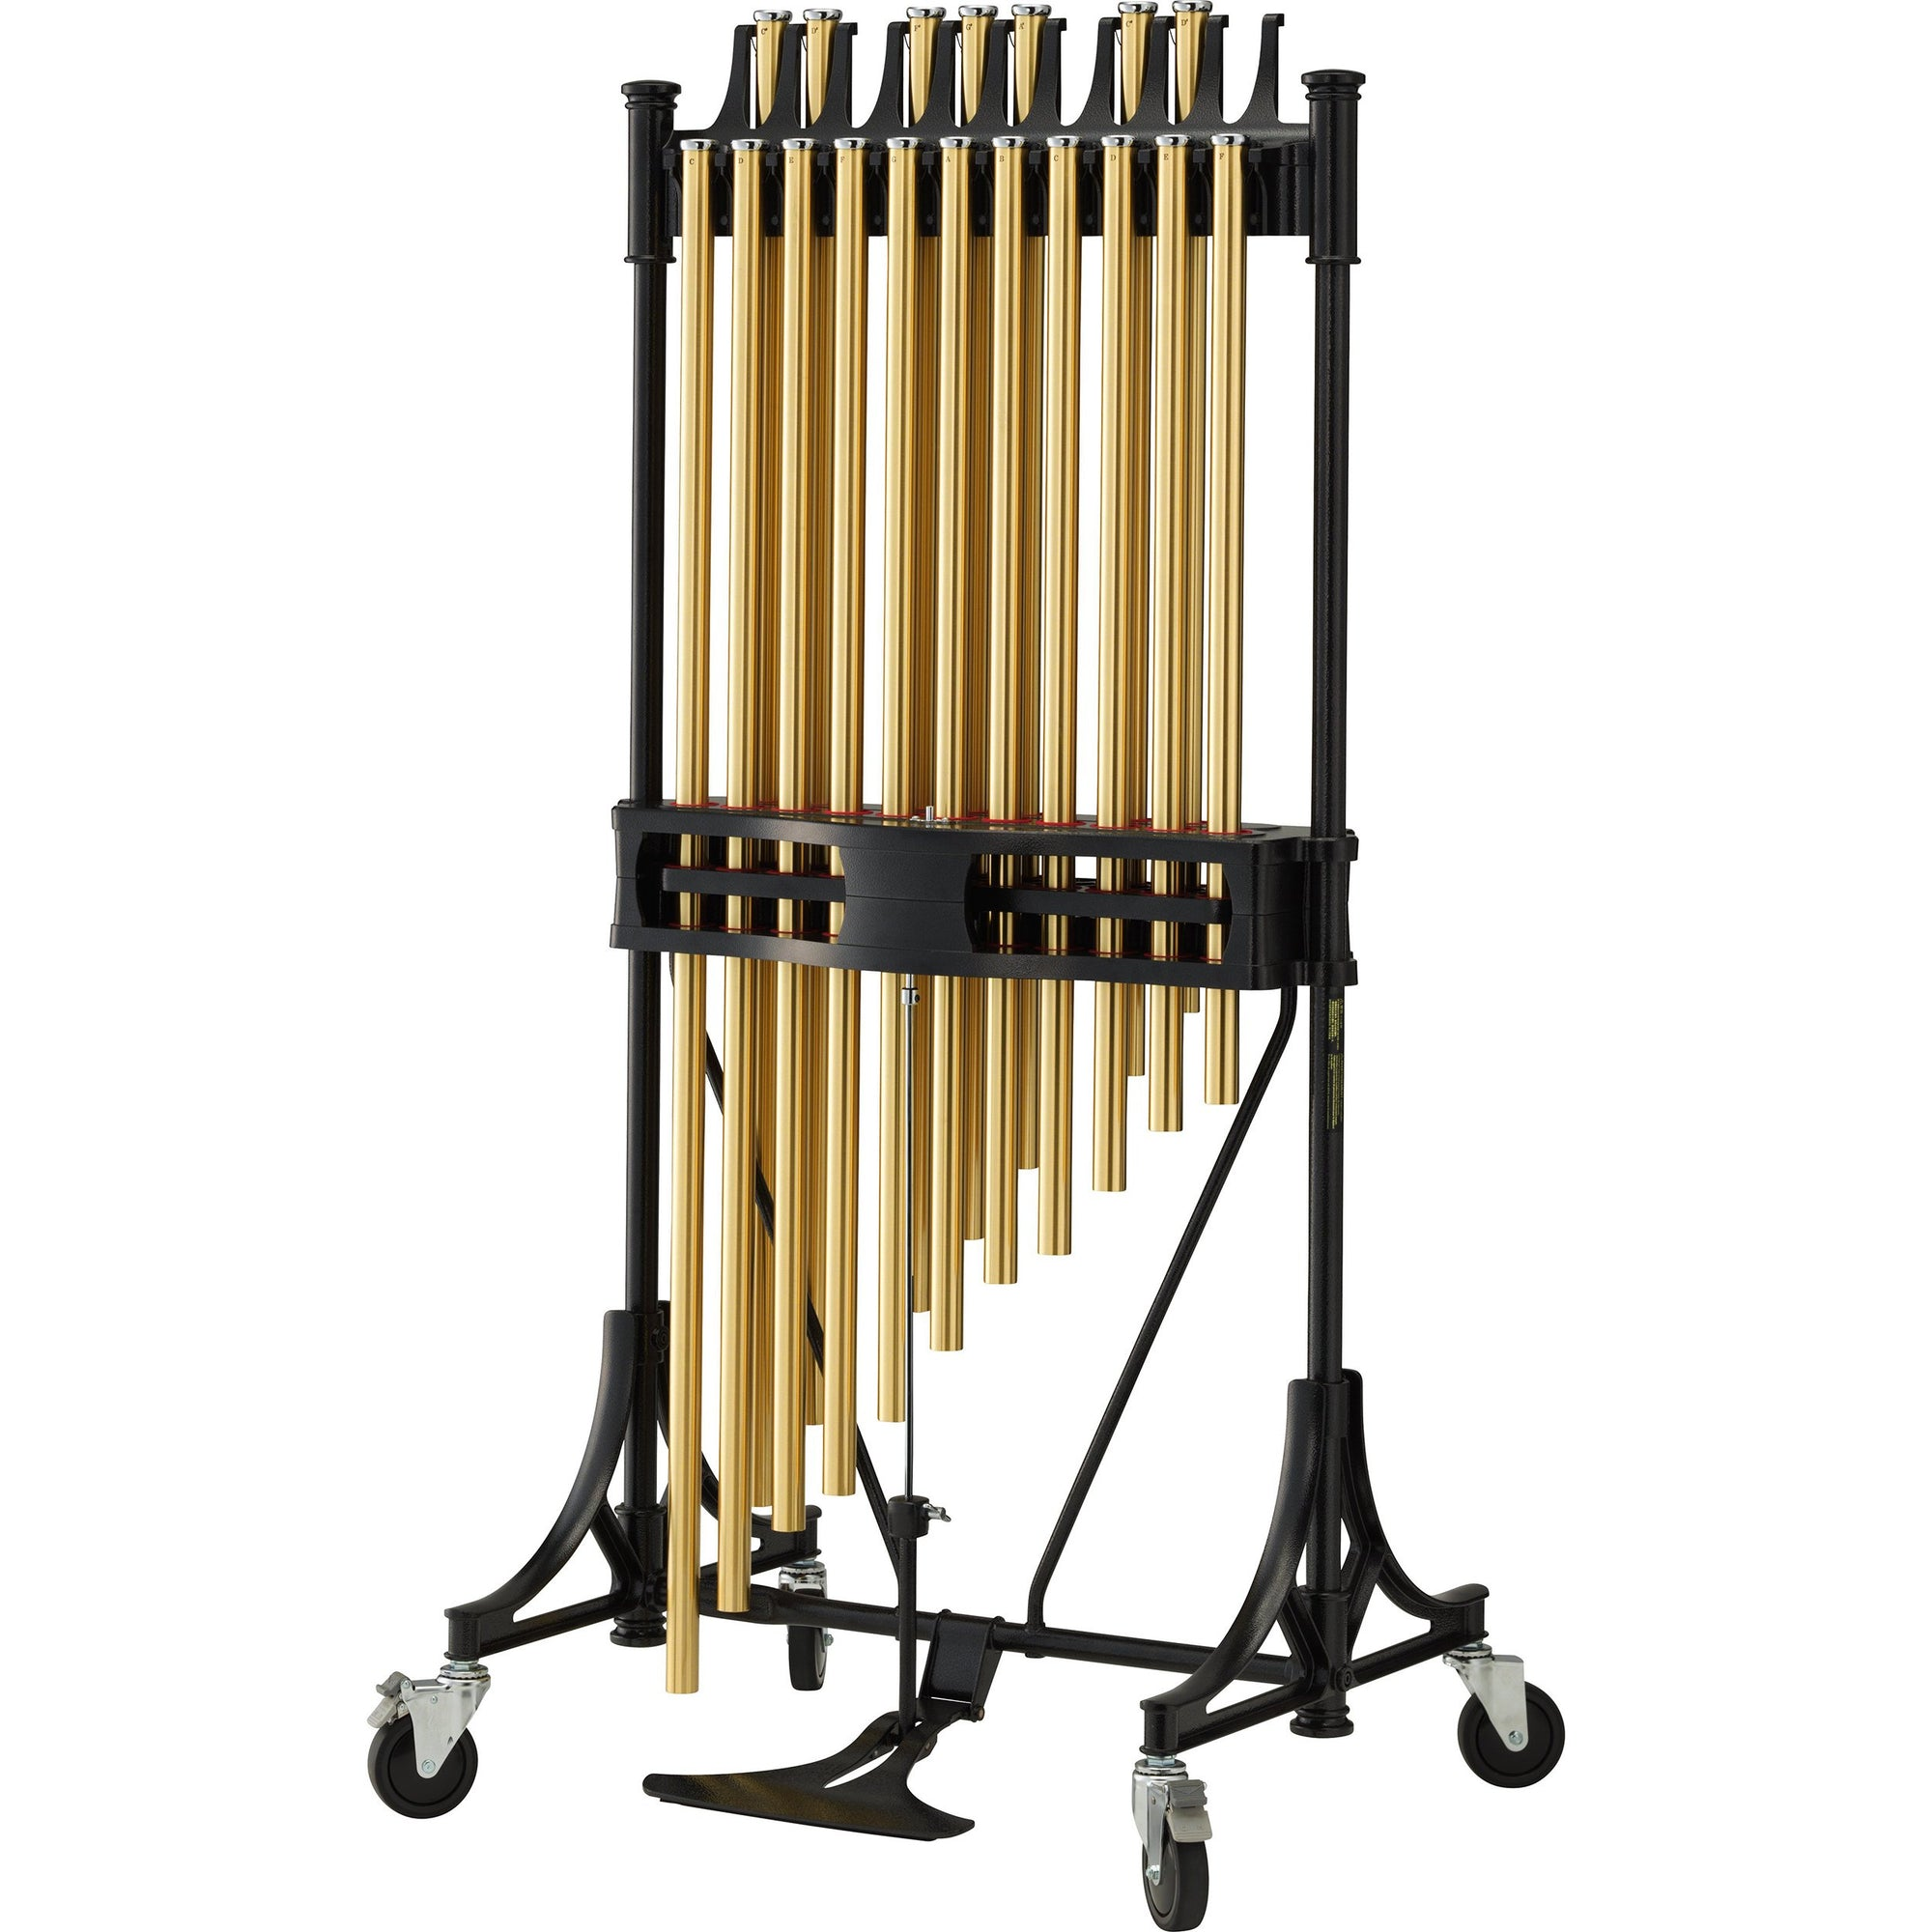 Yamaha - YCH-6018 - Chimes-Percussion-Yamaha-Music Elements